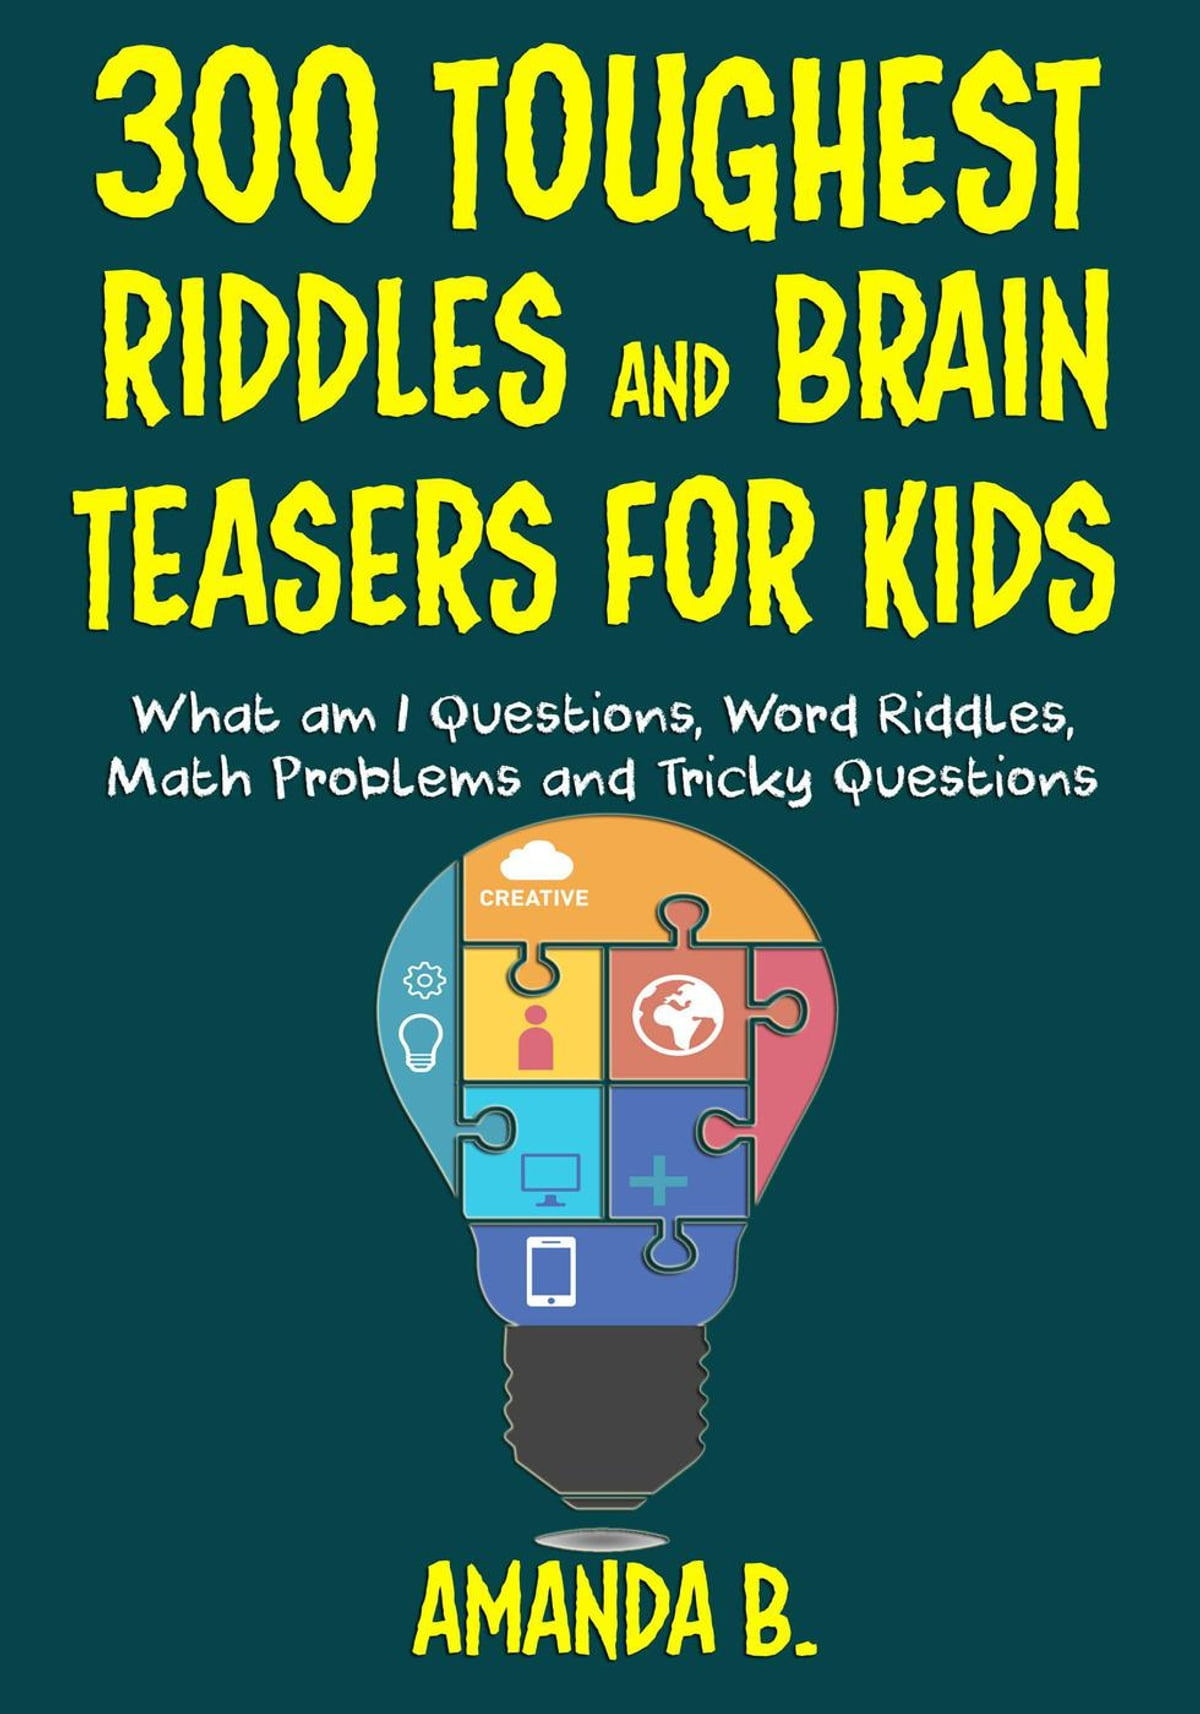 300 Toughest Riddles and Brain Teasers for Kids eBook by AMANDA B ...